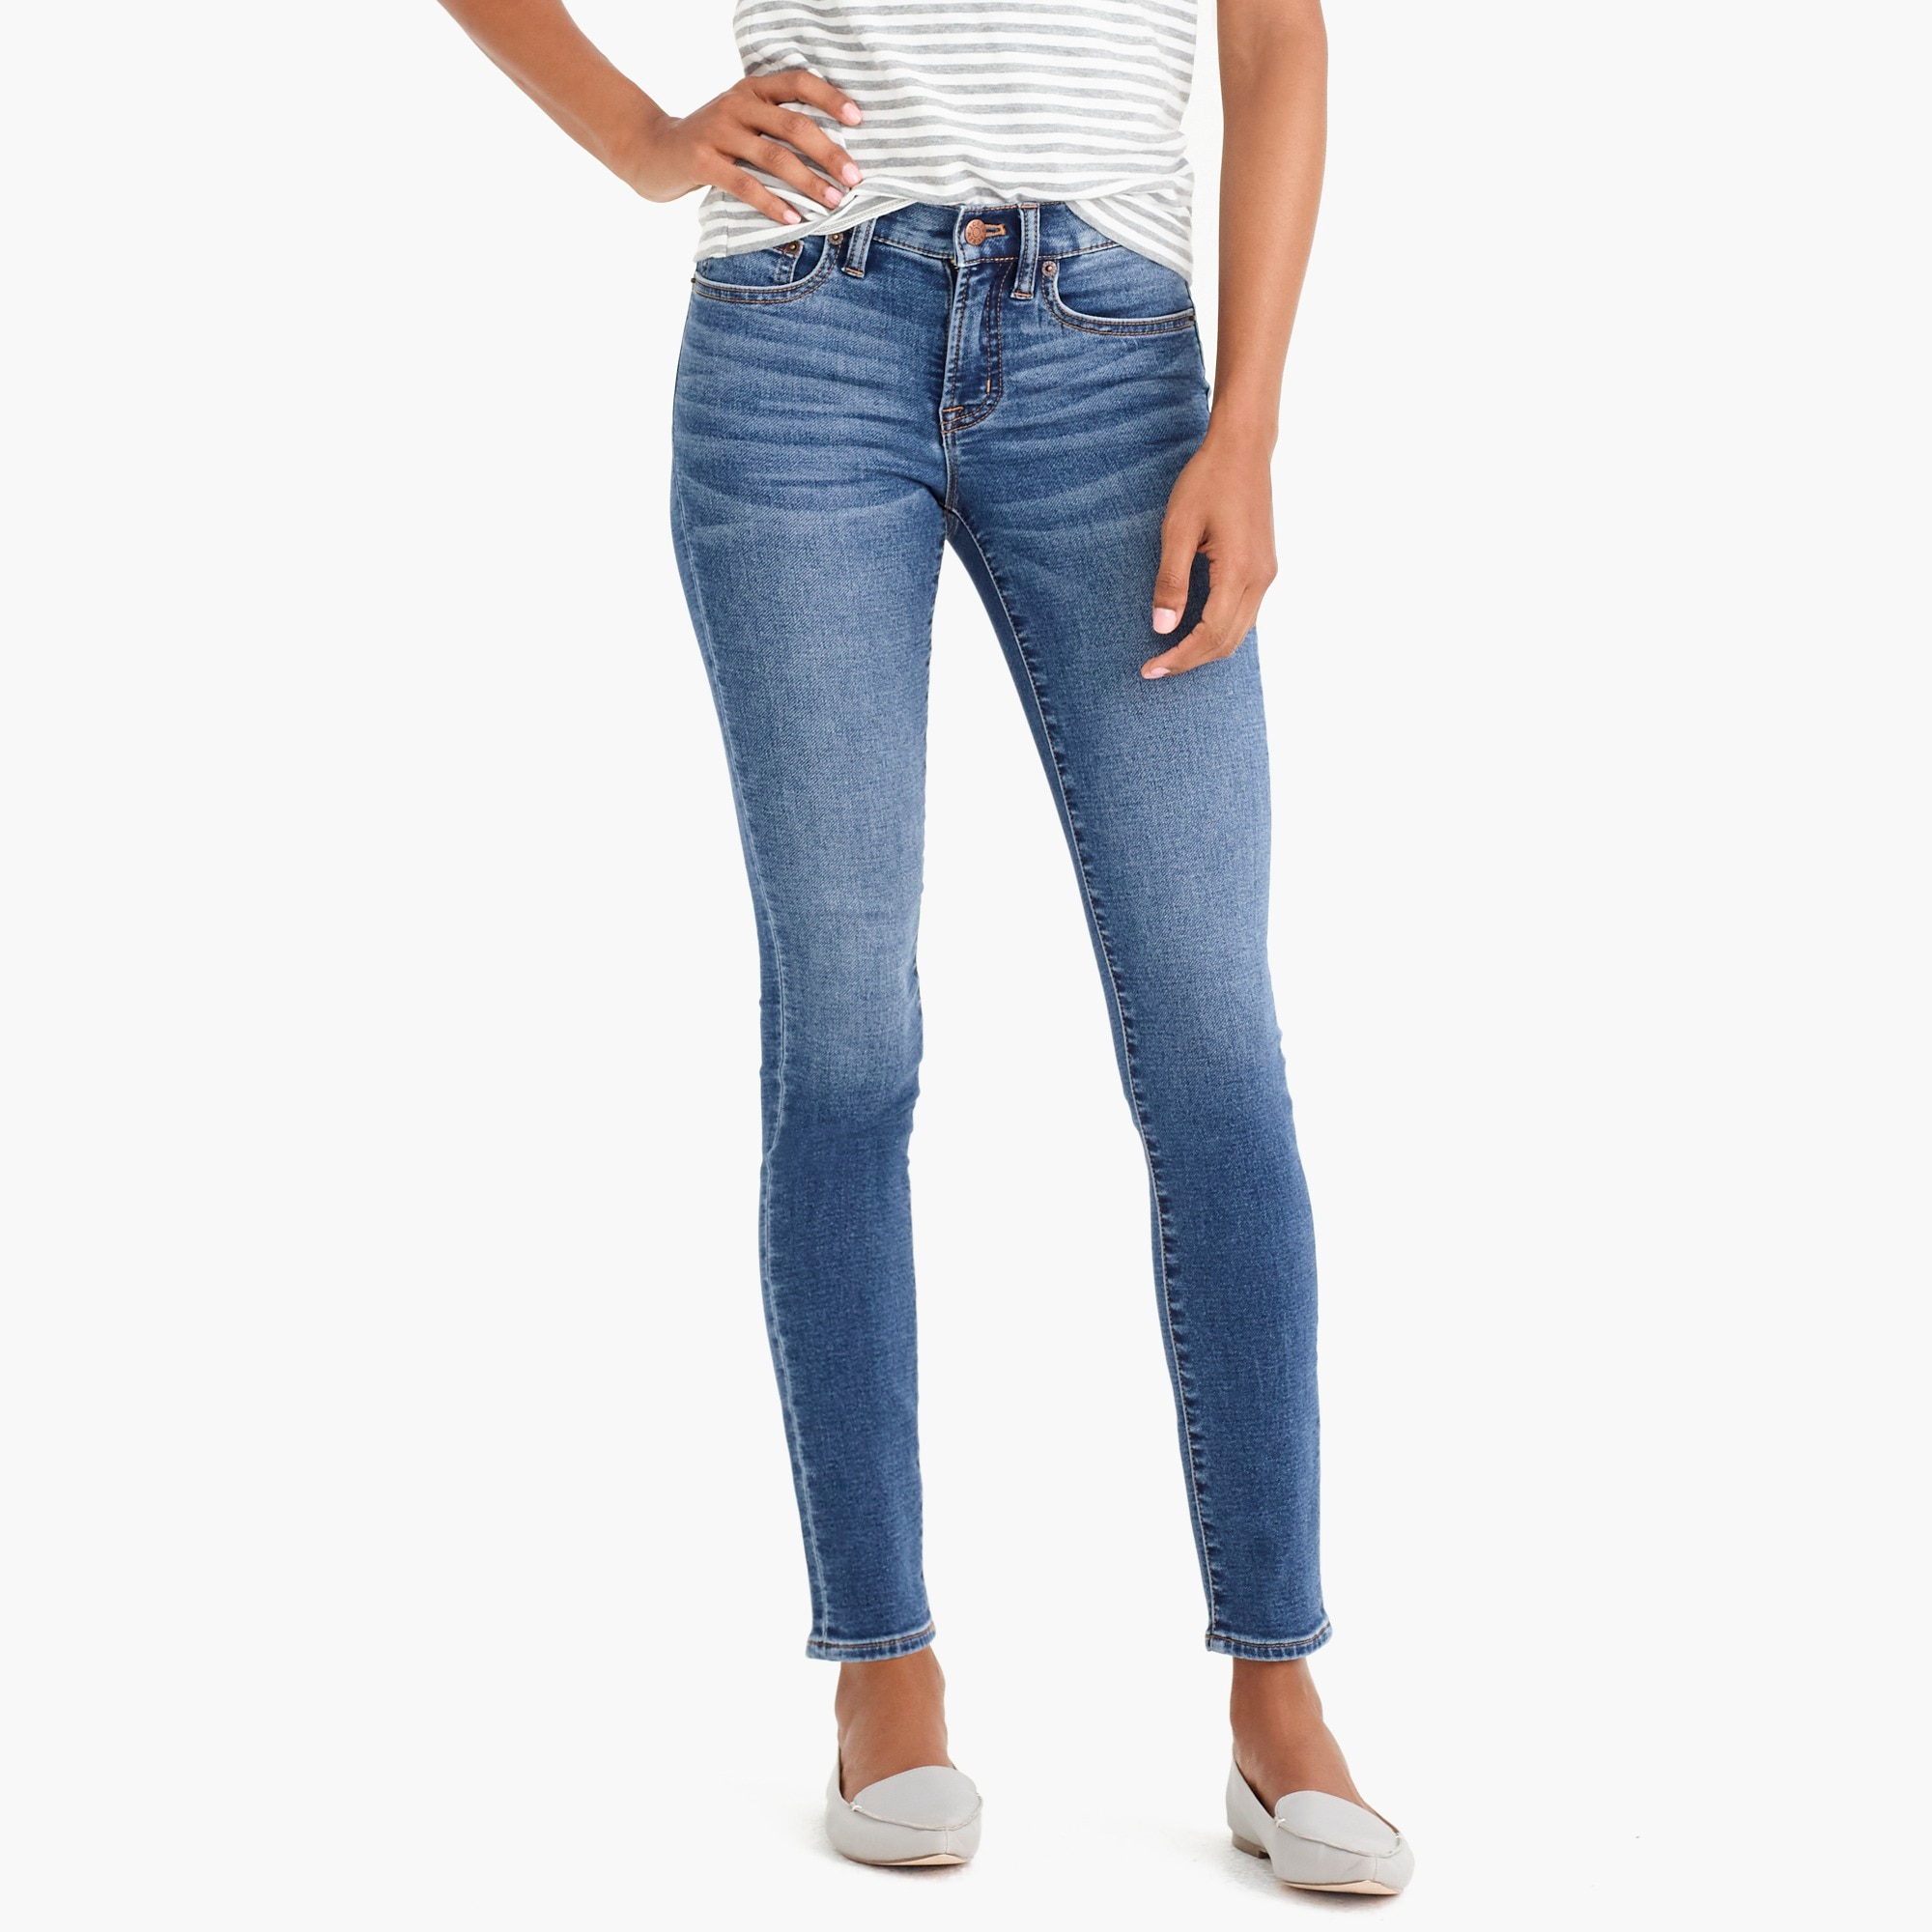 "8"" anywhere skinny jean in astoria wash : factorywomen 8"" midrise skinny"